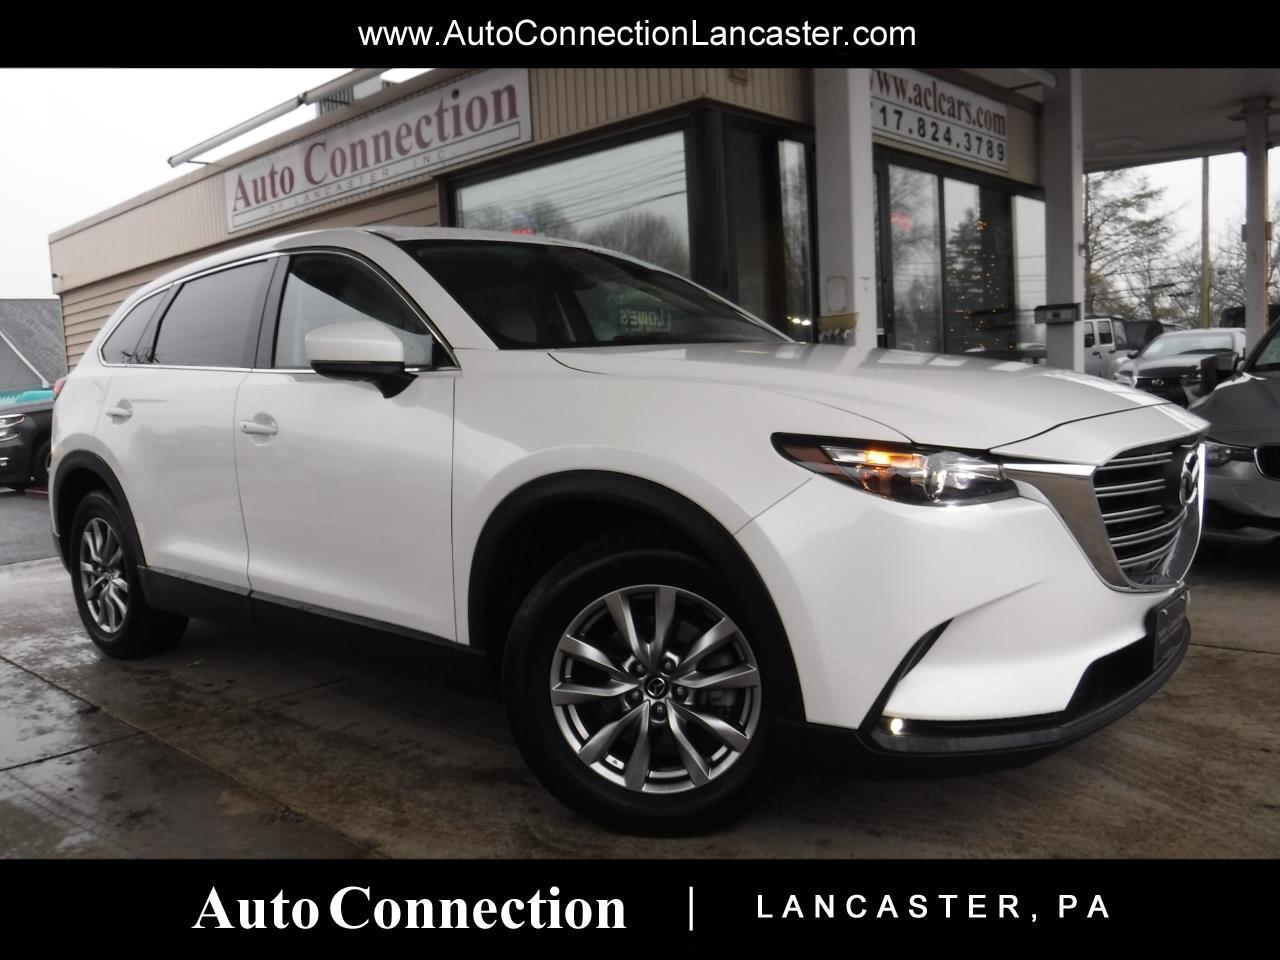 2016 Mazda CX-9 AWD 4dr Touring